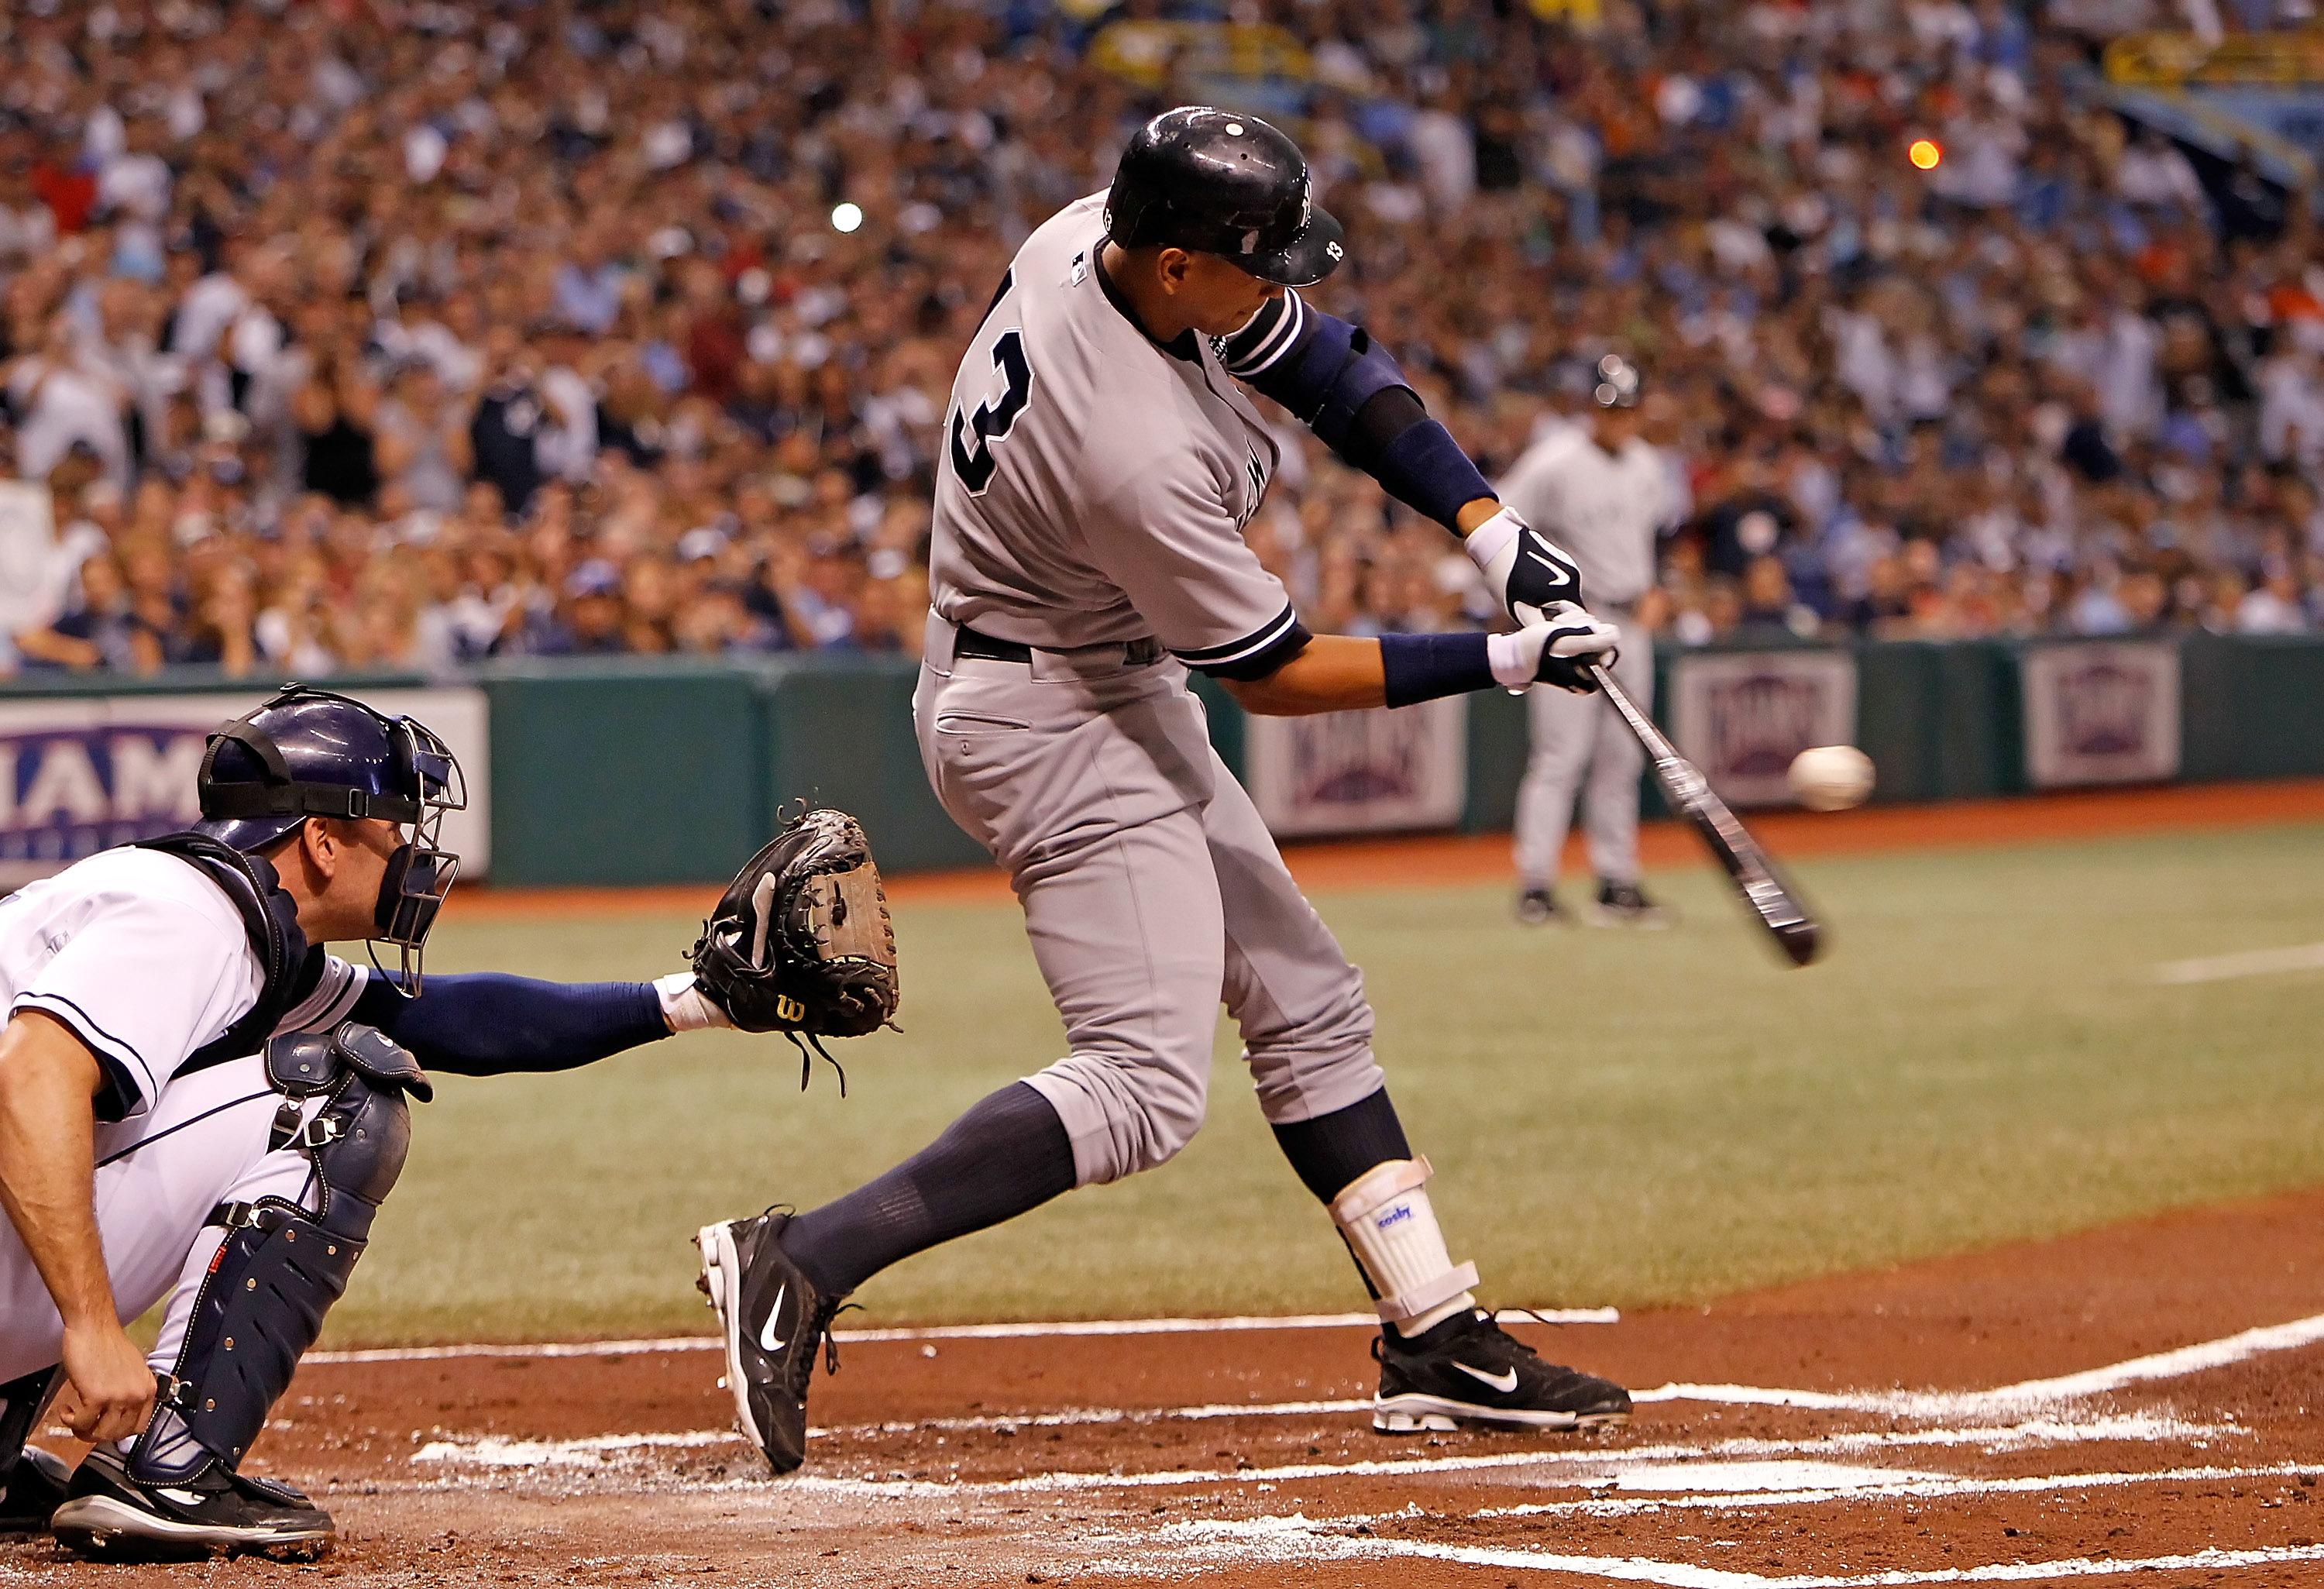 ST PETERSBURG, FL - JULY 30:  Infielder Alex Rodriguez #13 of the New York Yankees fouls off a pitch against the Tampa Bay Rays during the game at Tropicana Field on July 30, 2010 in St. Petersburg, Florida.  (Photo by J. Meric/Getty Images)